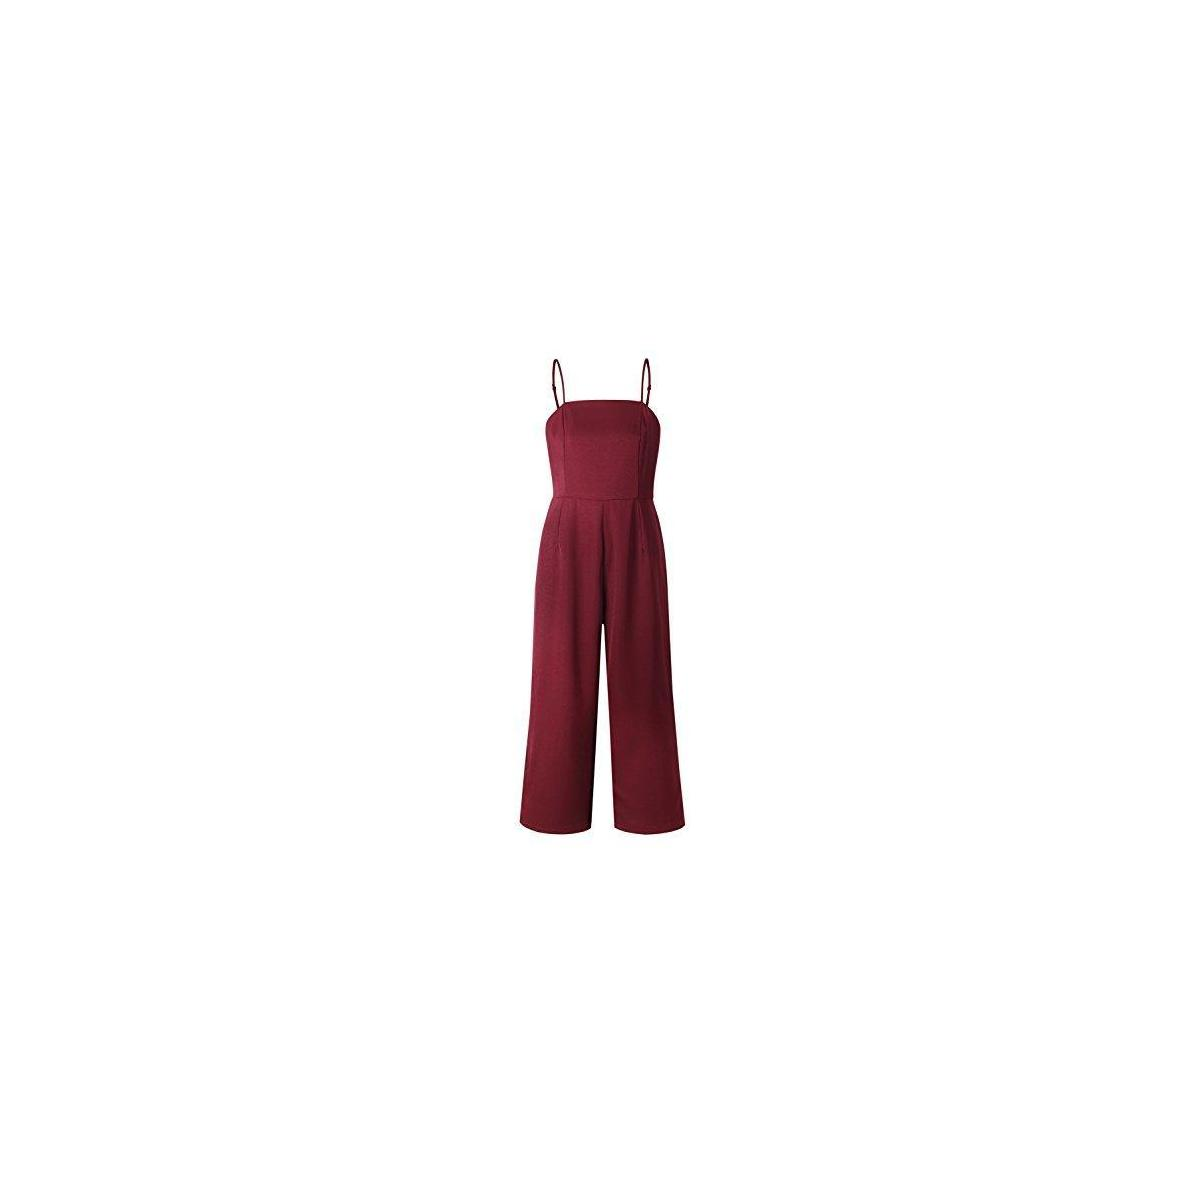 Women's Solid Color Backless Sleeveless Wide Long Pants Jumpsuit Rompers